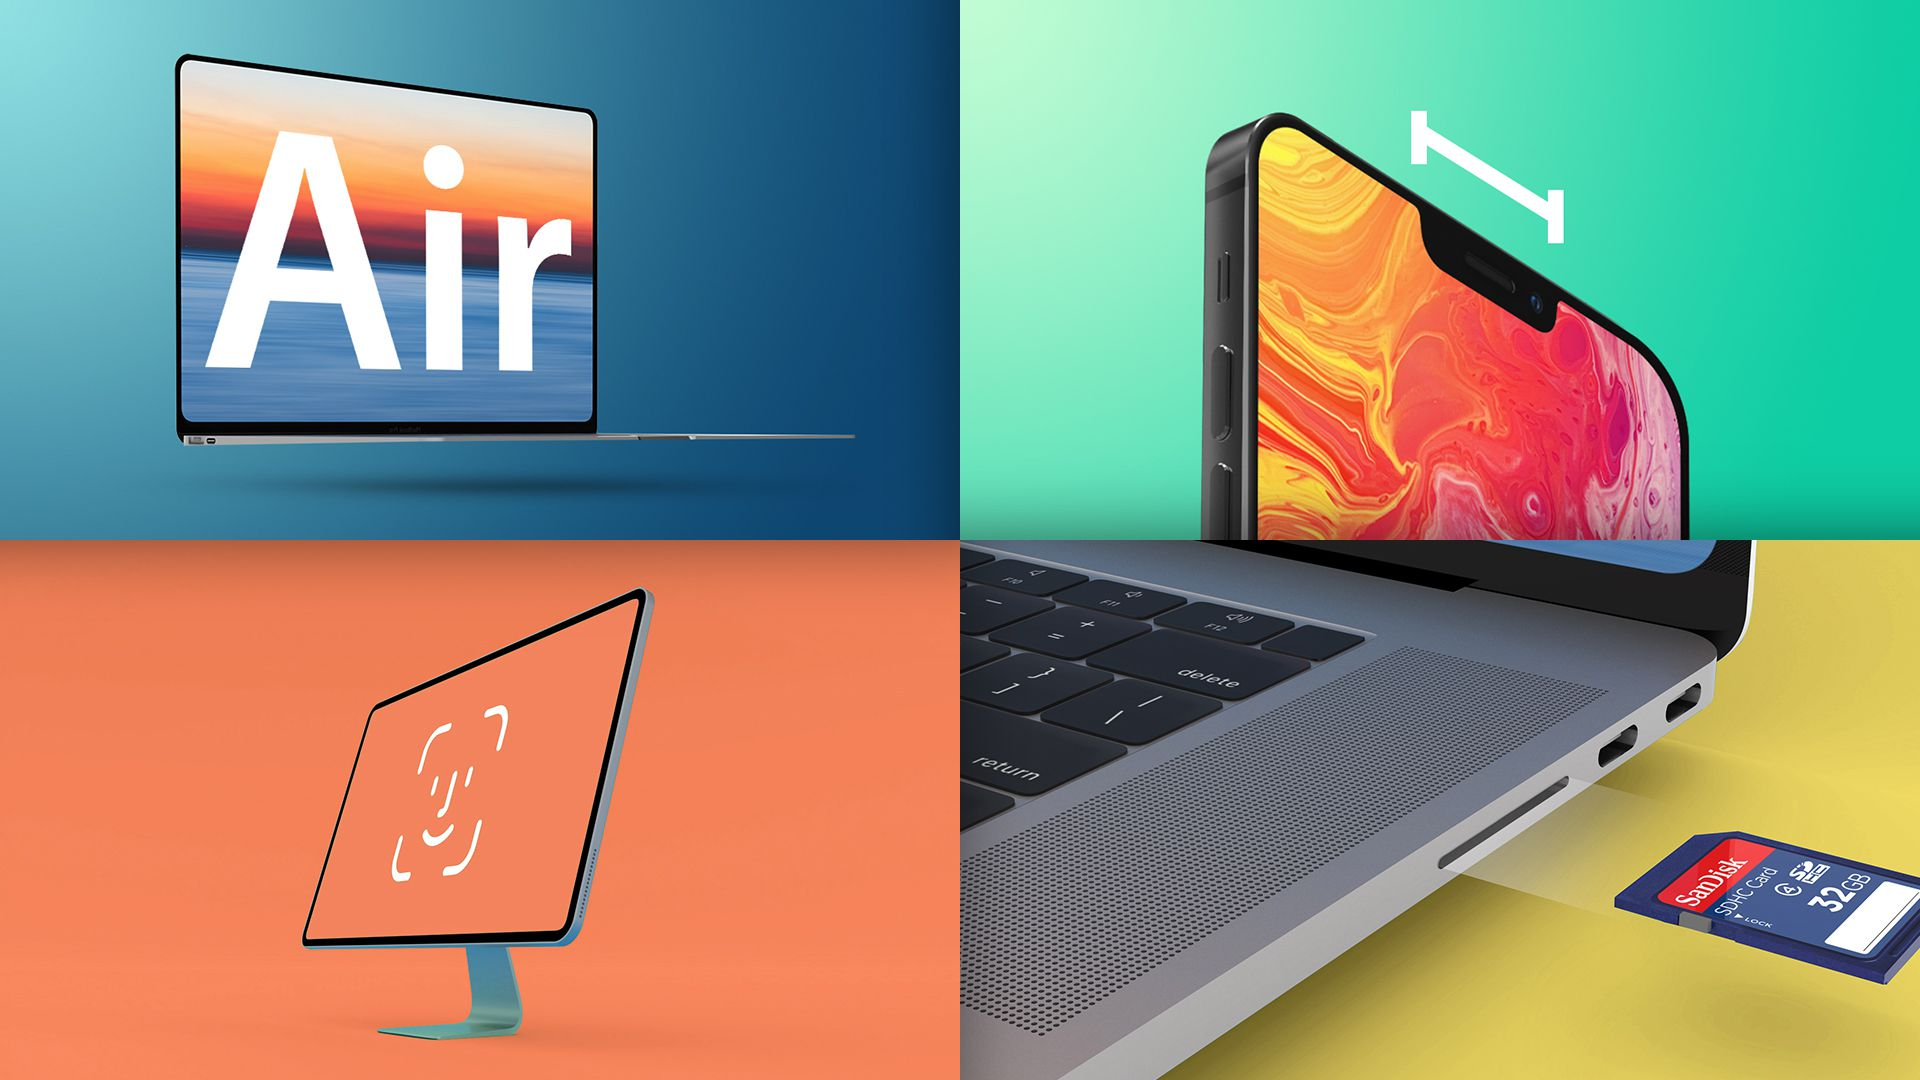 Headline news: MacBook Air is 'thinner and lighter', iPhone 13 is smaller, iOS 14.4 in